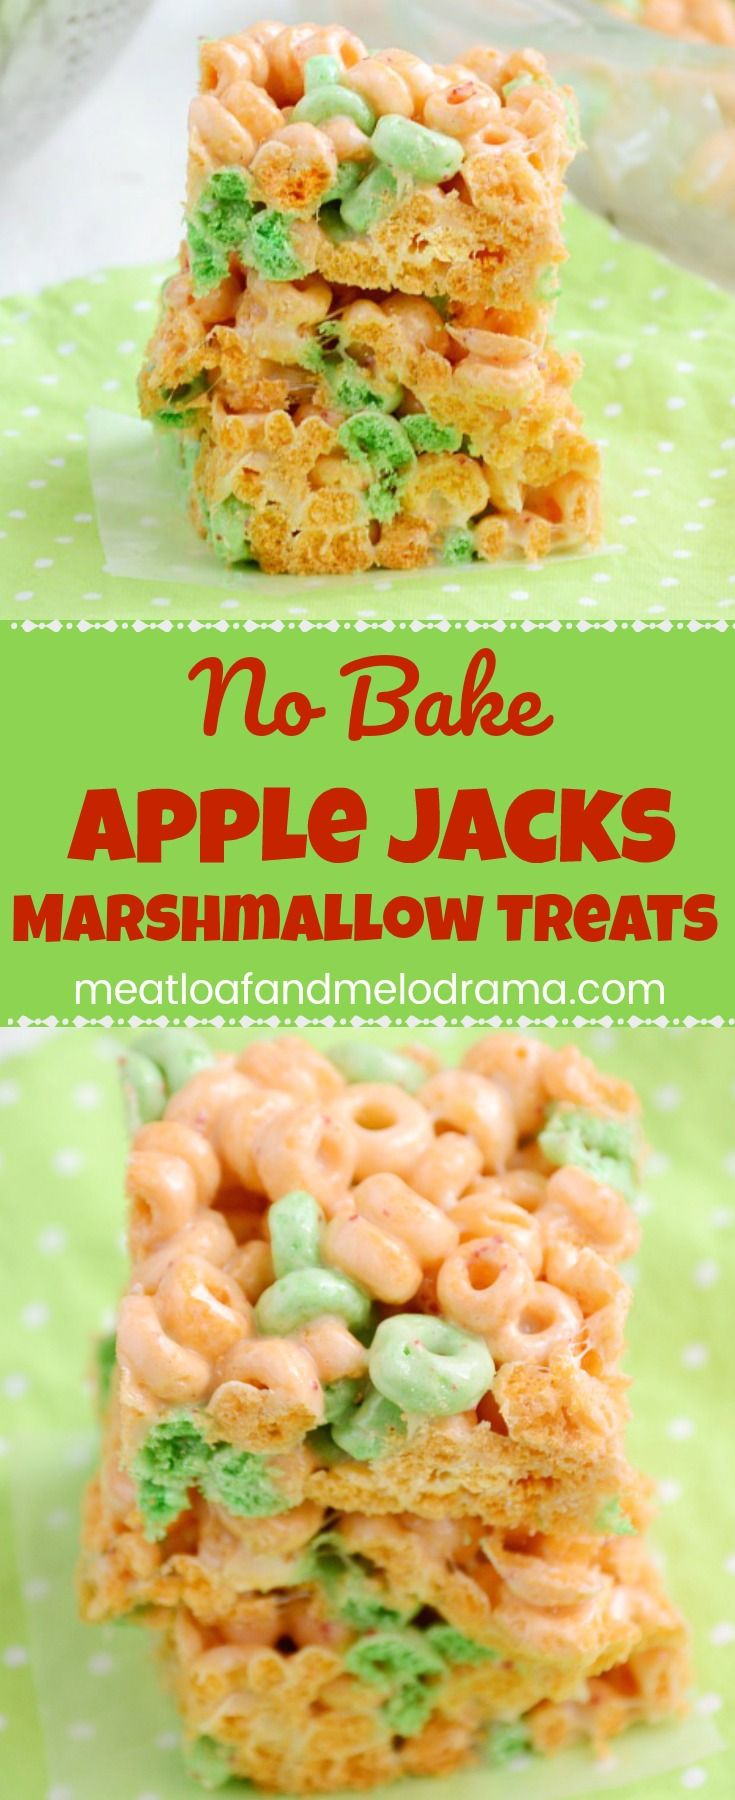 No Bake Apple Jacks Marshmallow Treats -- A quick and easy no bake dessert that's a perfect summer treat for kids of all ages and takes just a few minutes to make!